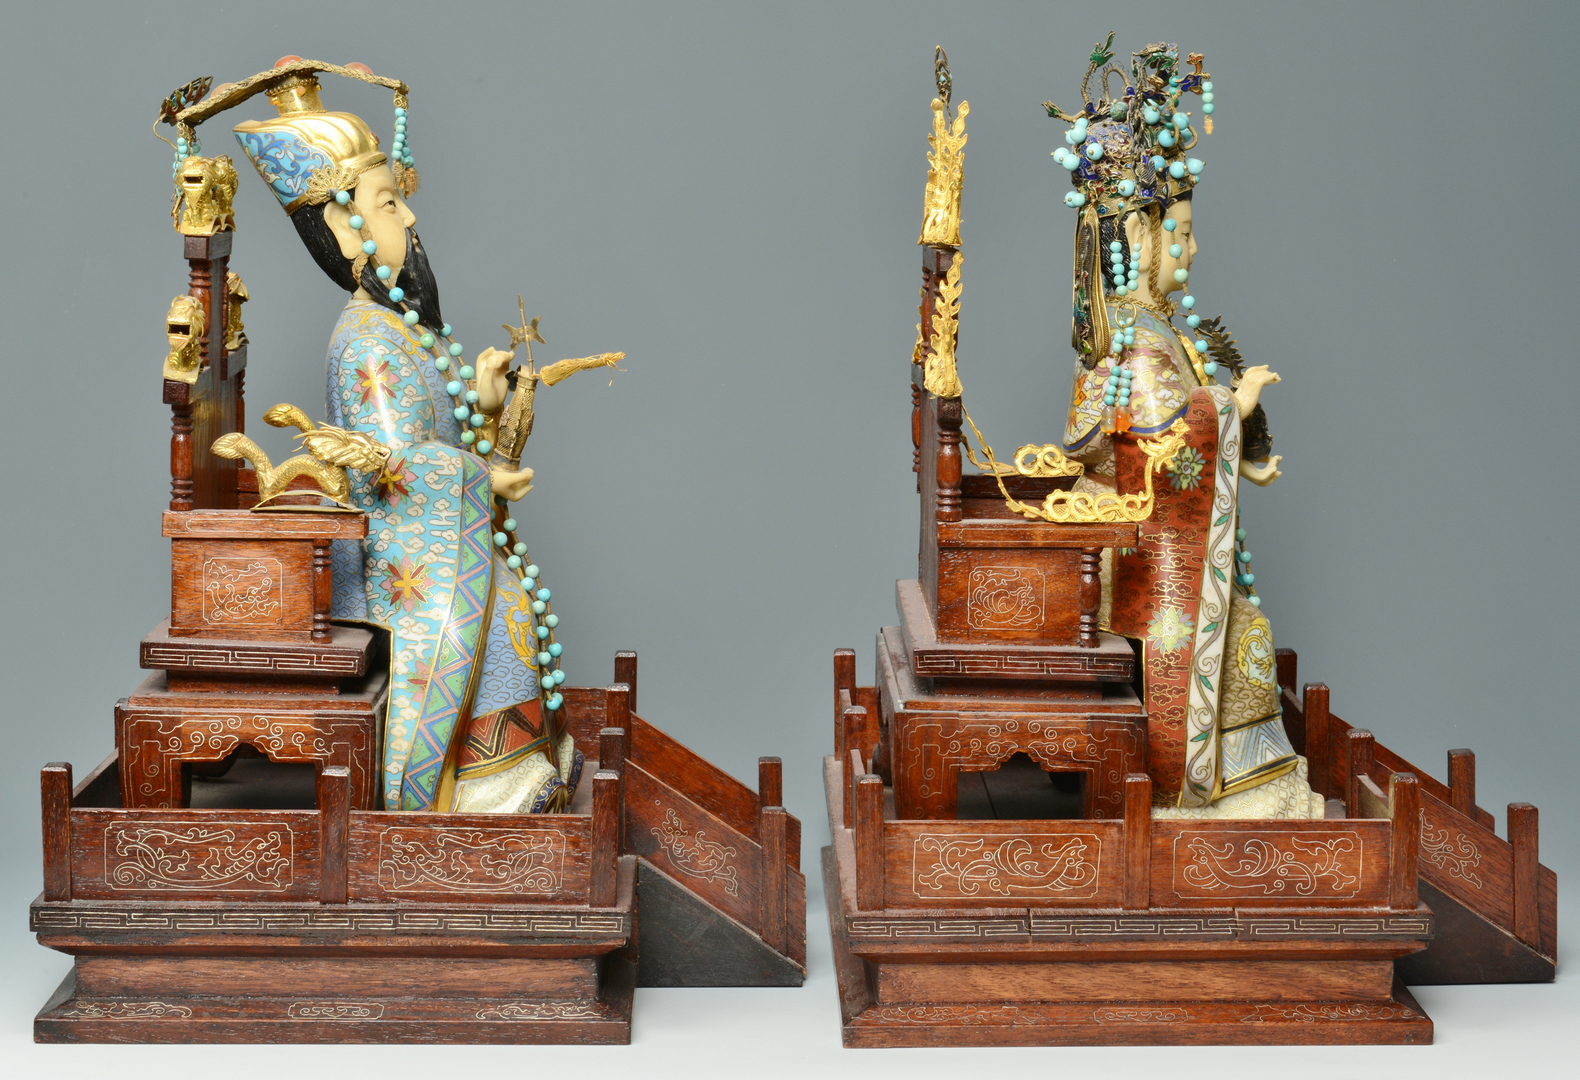 Lot 3088274: Pr Cloisonne Emperor and Empress Figures